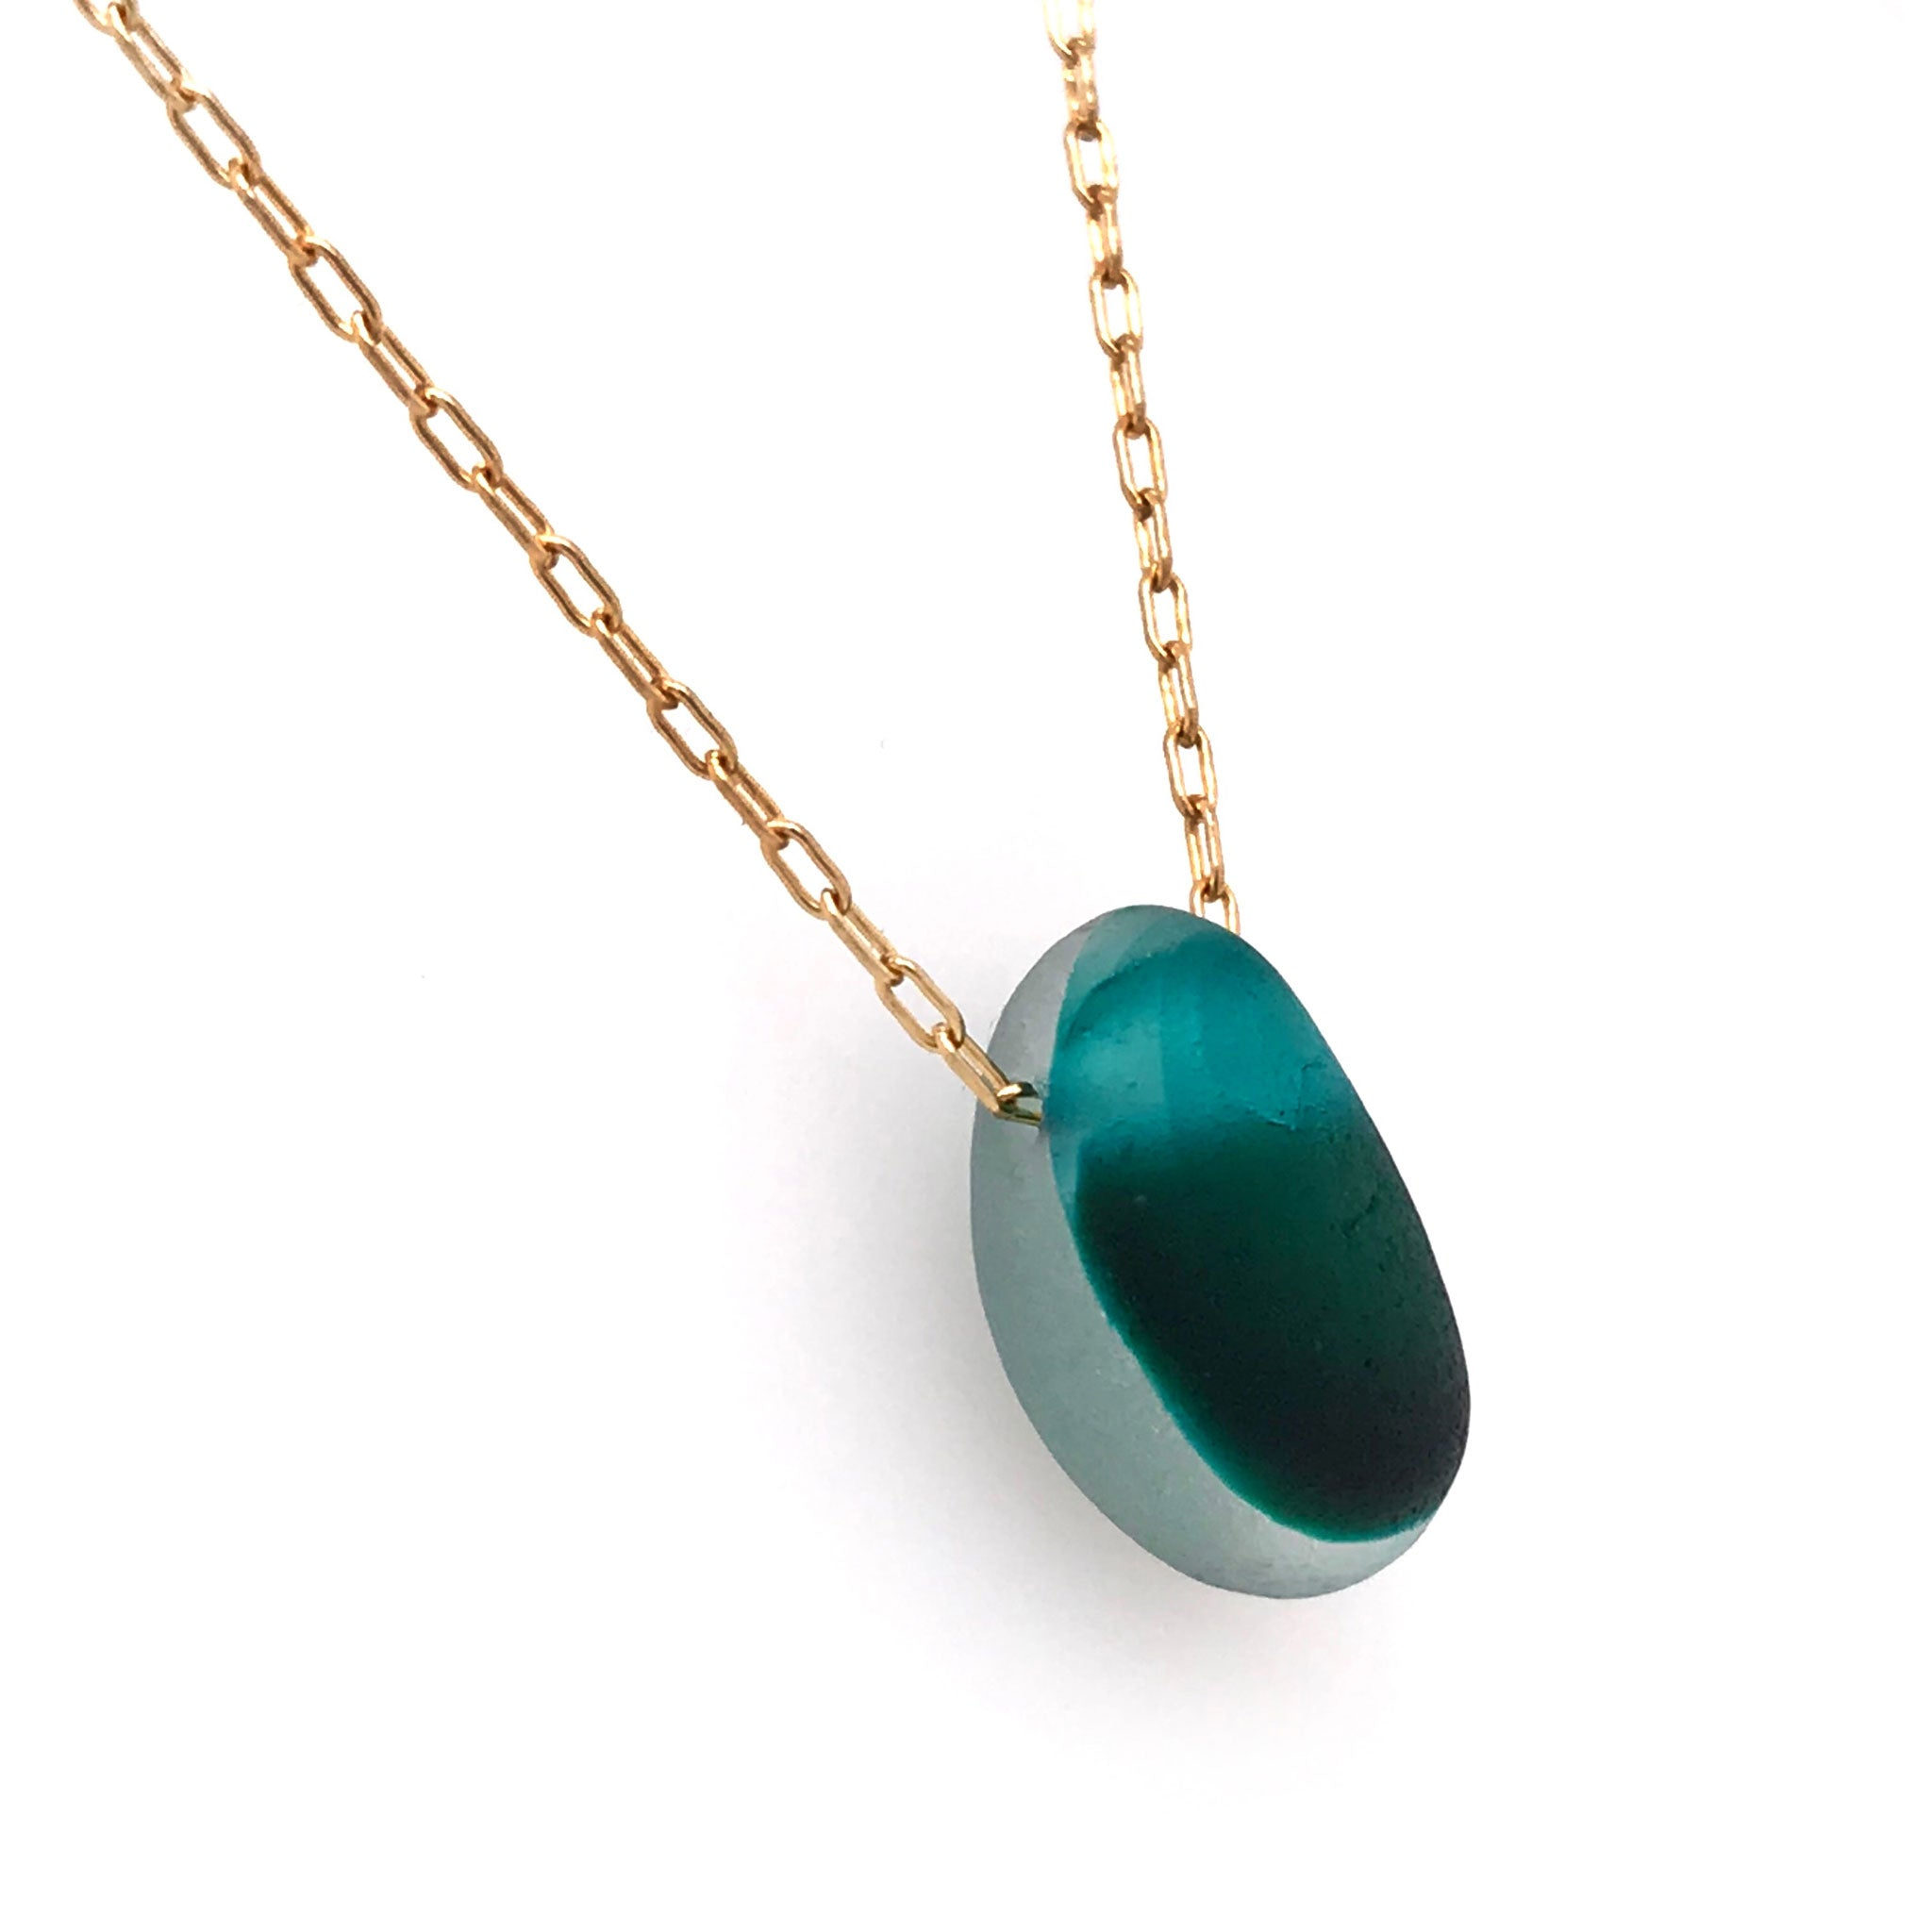 teal and aqua multi-coloured seaglass necklace on gold chain Kriket Broadhurst jewellery Christmas gift